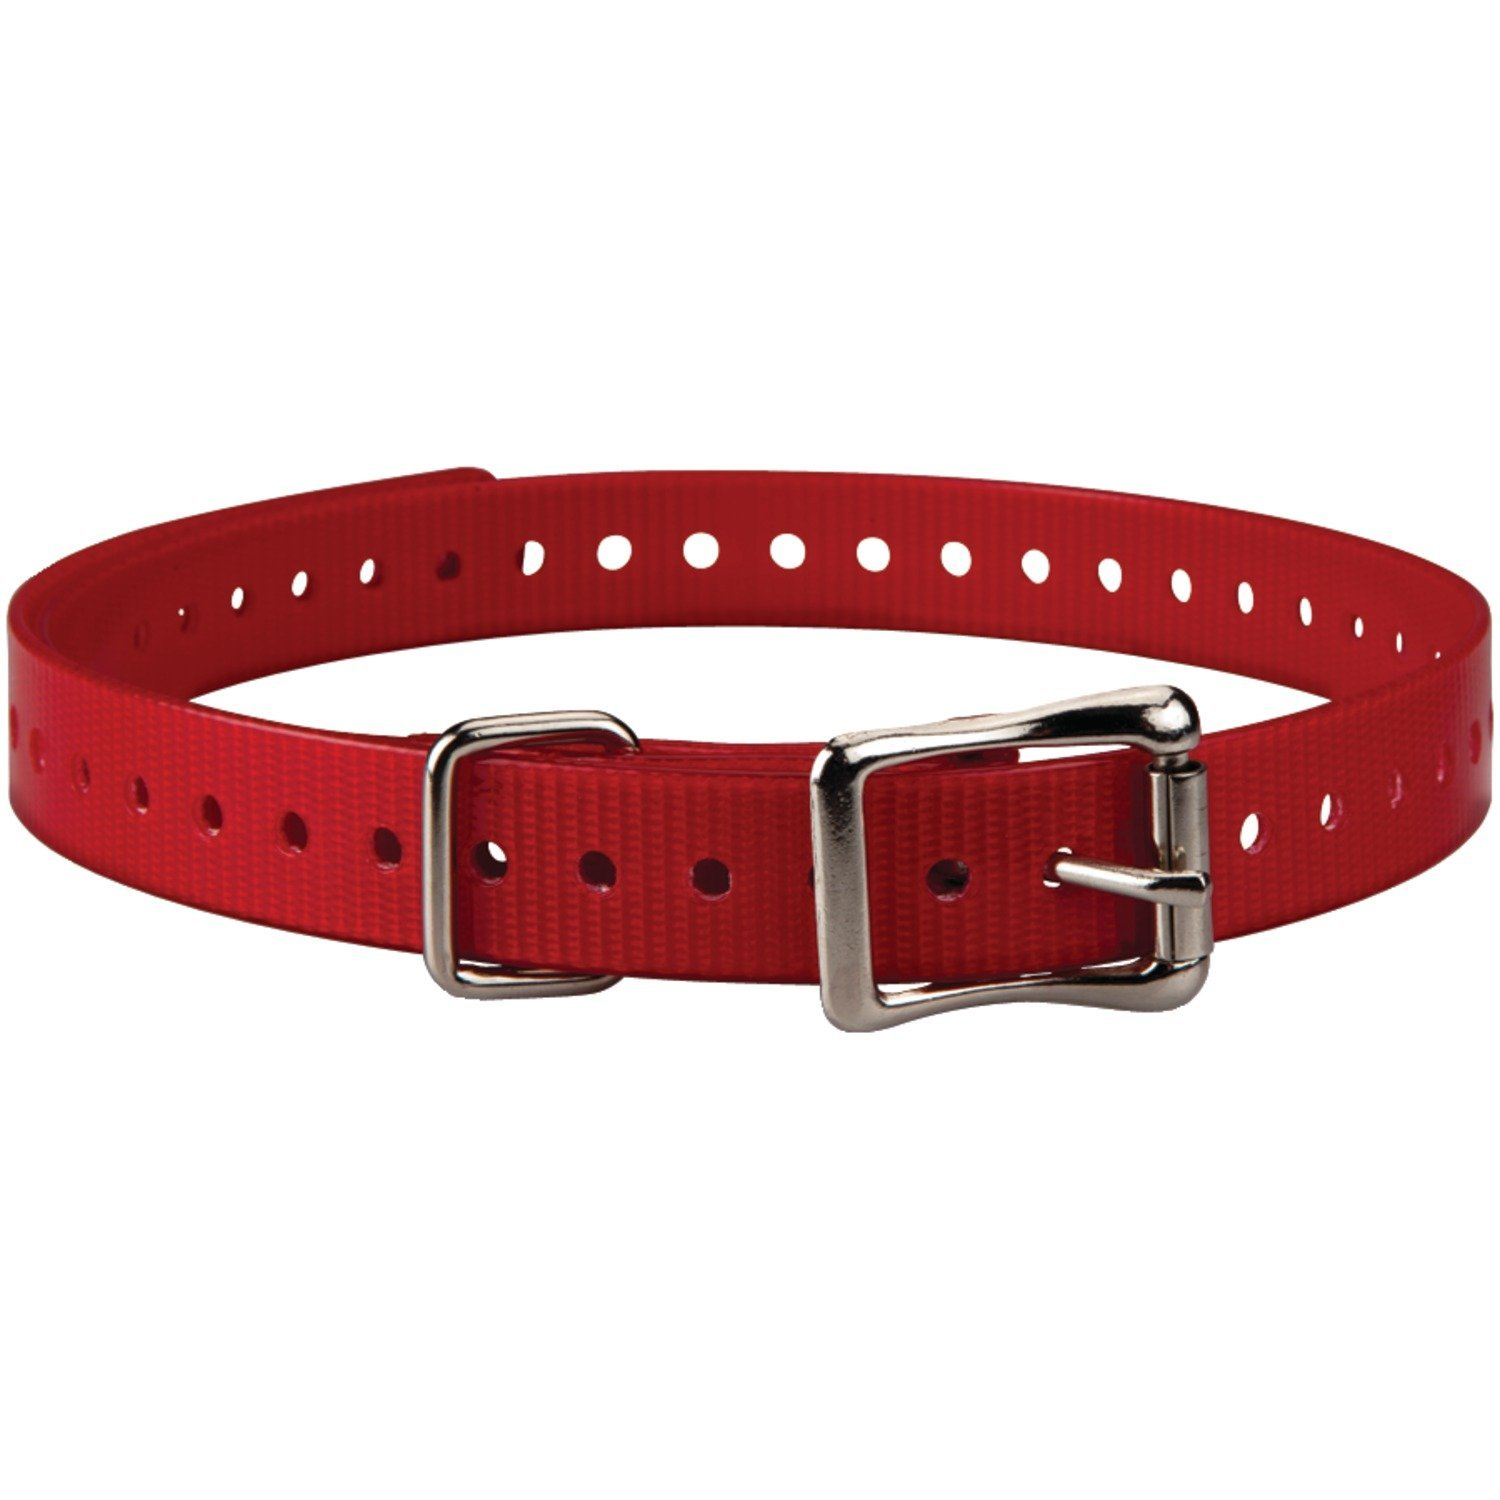 Garmin Compatible 3/4-Inch Red Collar Strap for Garmin Delta Series